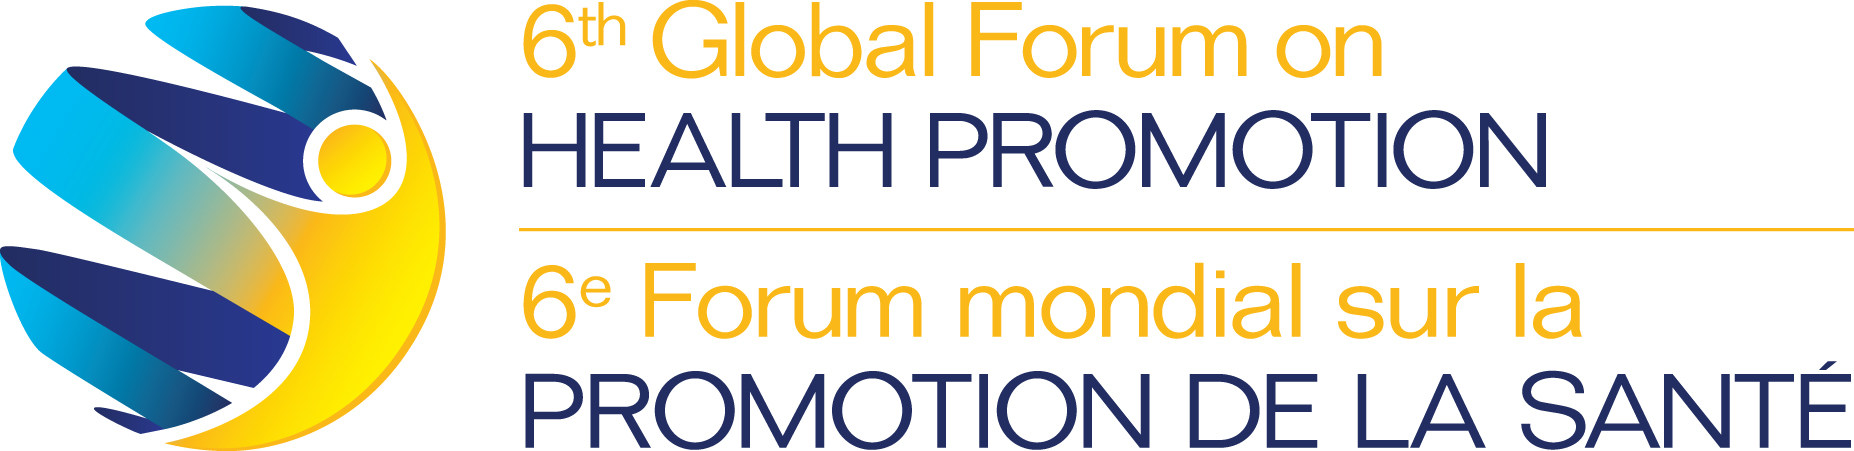 The 6th Global Forum on Health Promotion, in PEI, Canada, October 16-17, 2016 (CNW Group/The Quaich Inc.)